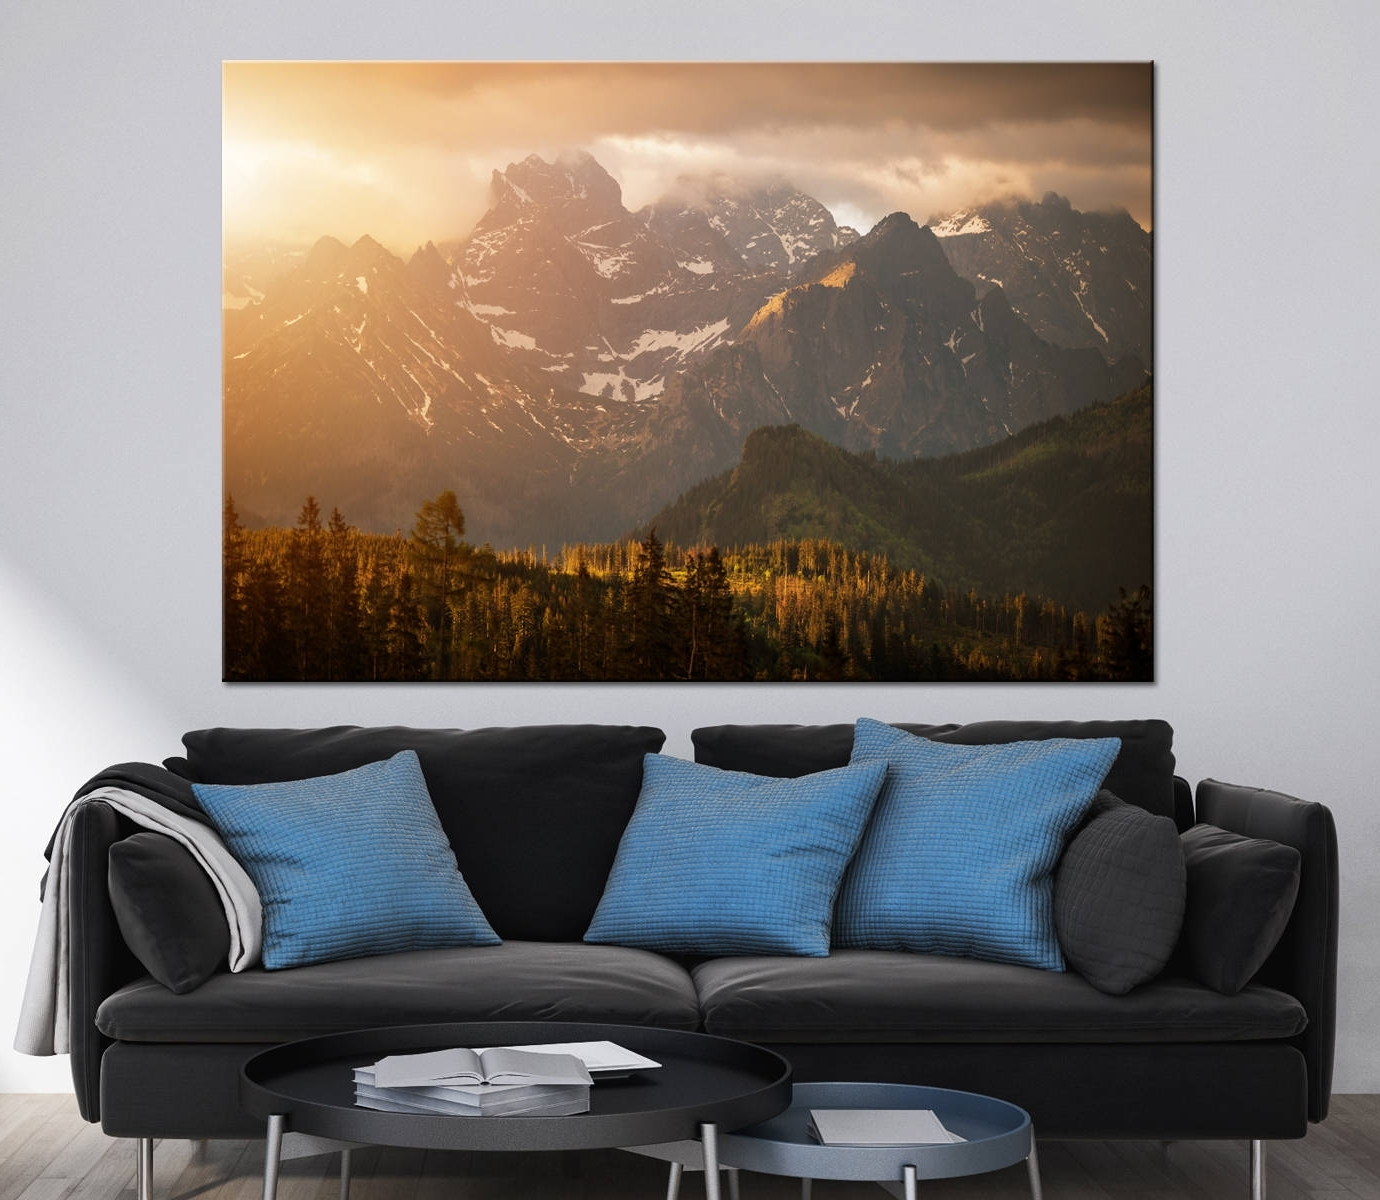 Mountains Sunset Scenery Photoprint Multi Panel Canvas Print Wild For Most Current Extra Large Wall Art Prints (View 7 of 15)